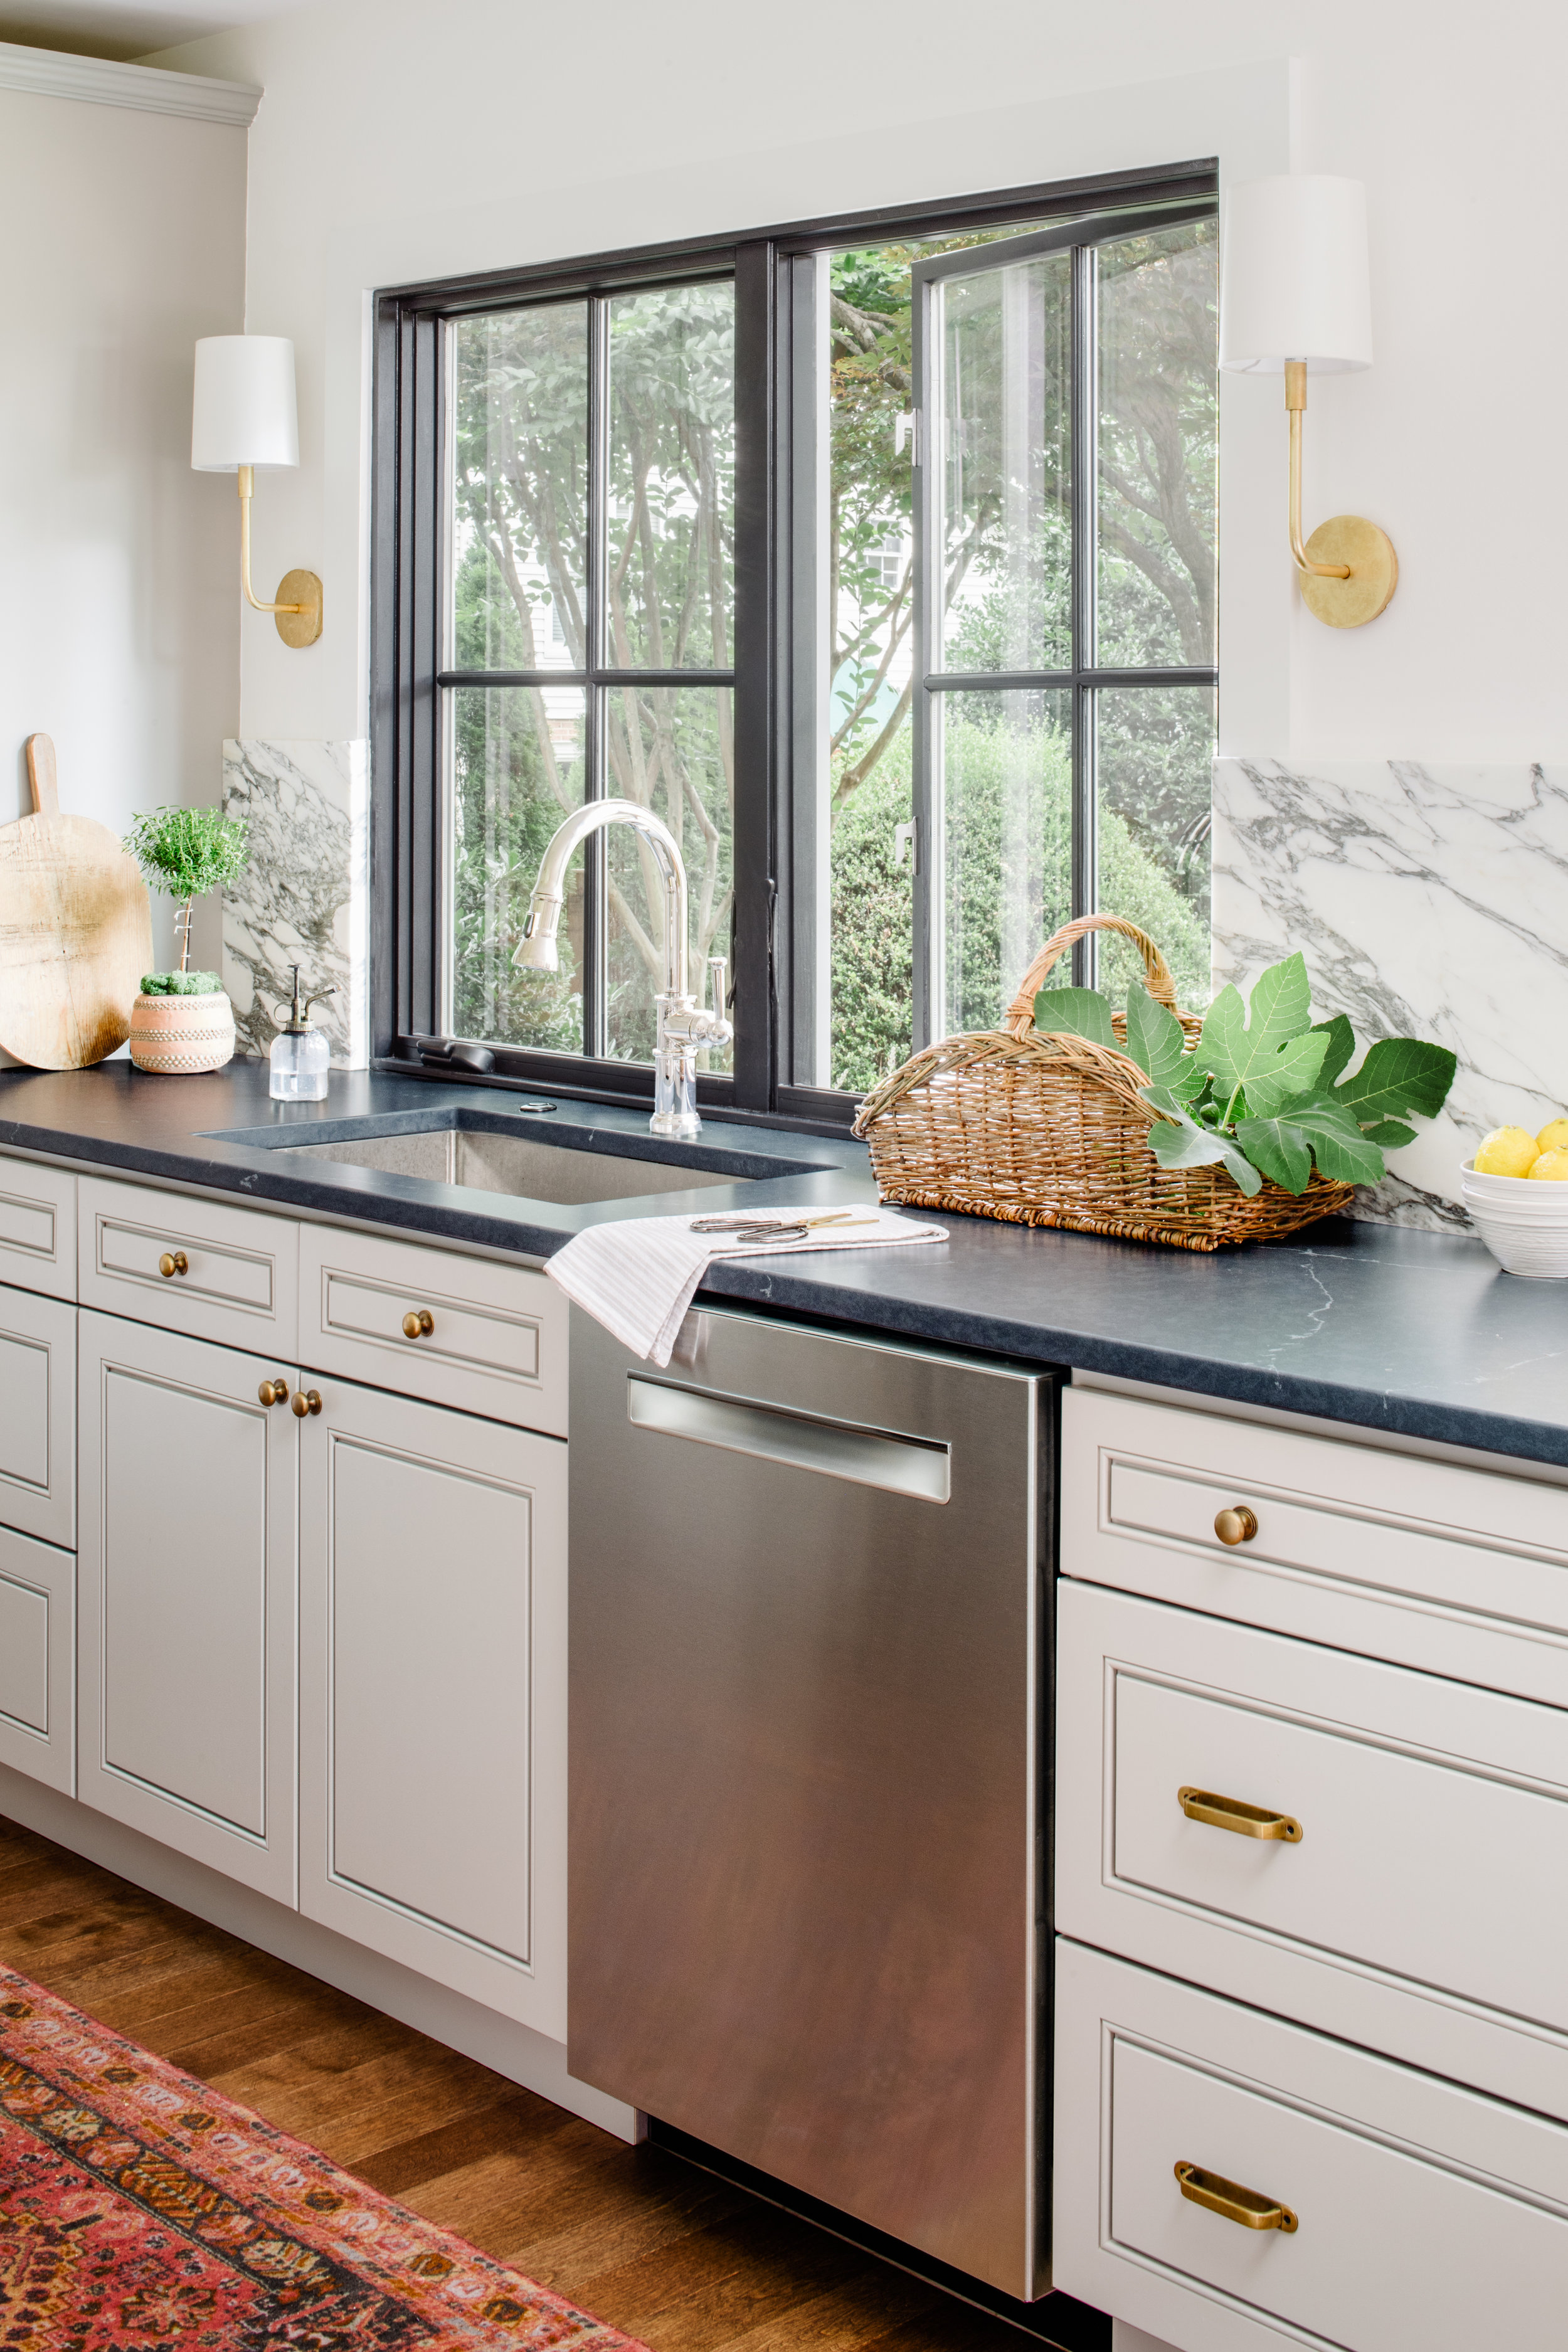 Galley kitchen by Alison Giese Interiors